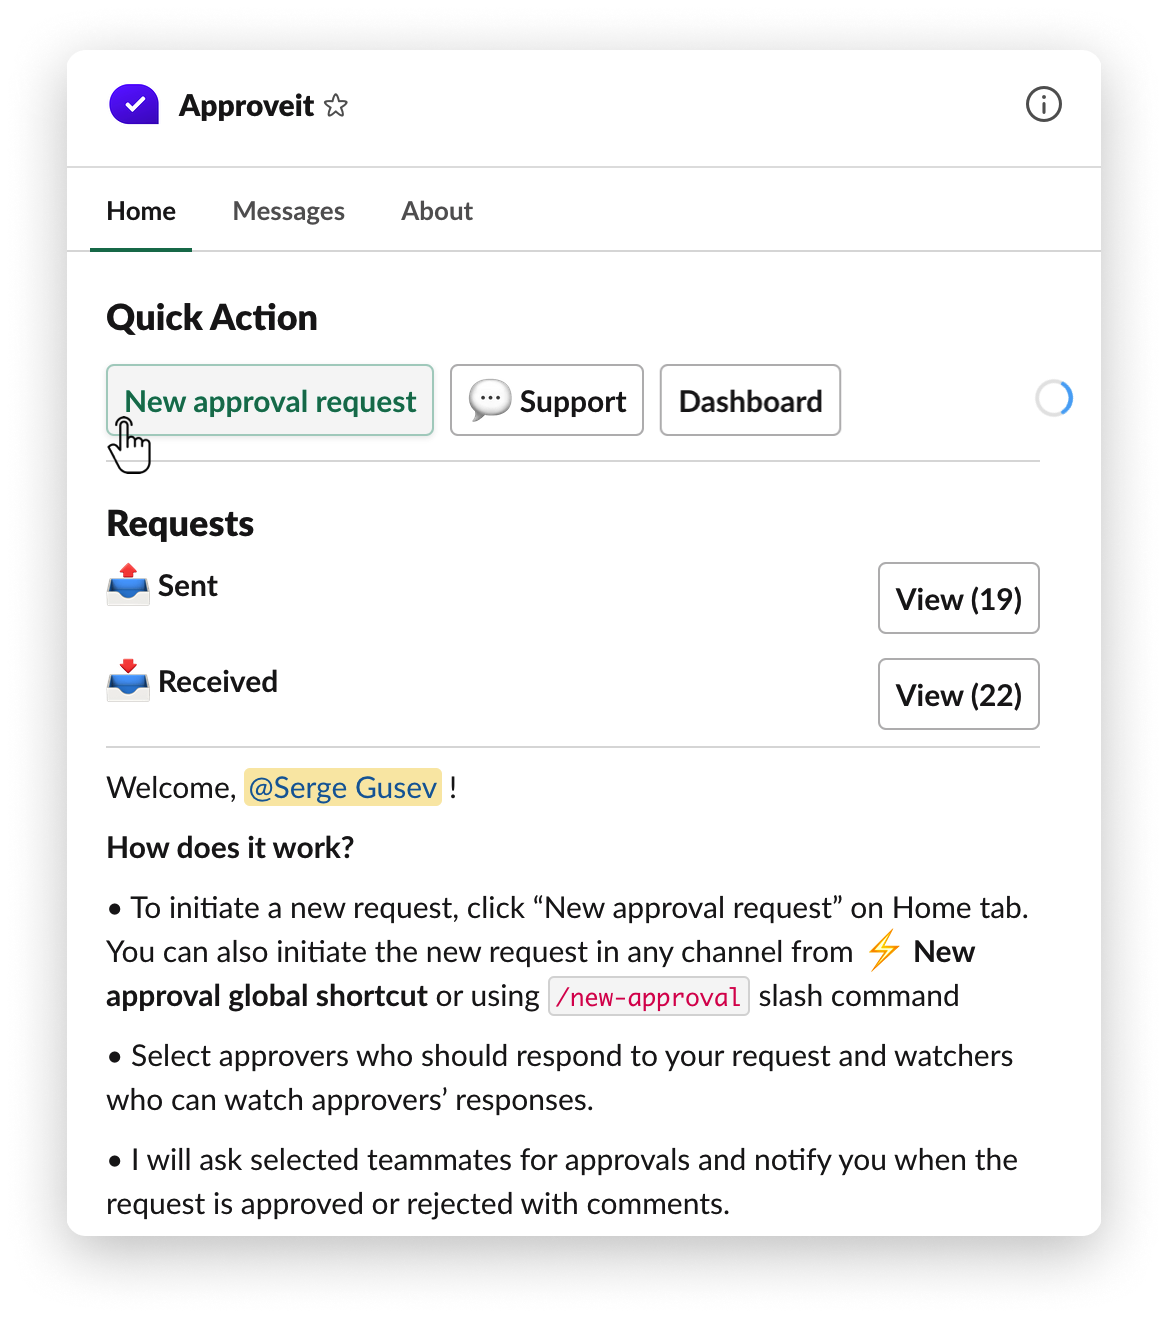 Select new approval request